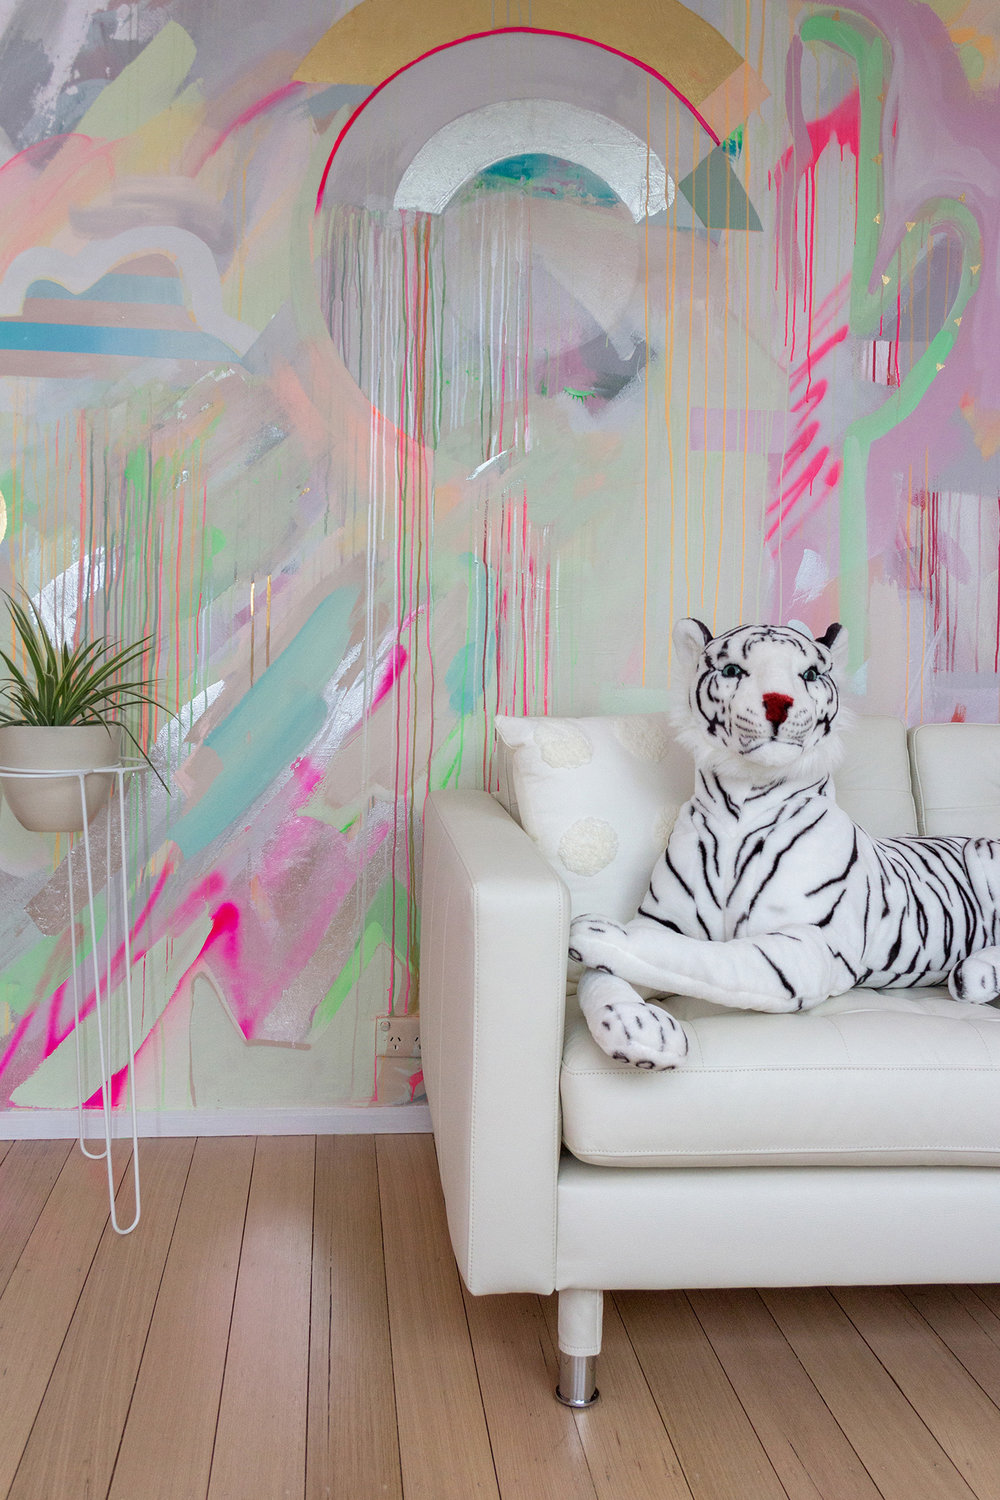 Vibrant galaxy wall mural in bright neon colours, featuring metallic rainbow, spray painted cactus and striped cloud. Styled in front is a white leather couch and black and white toy tiger.